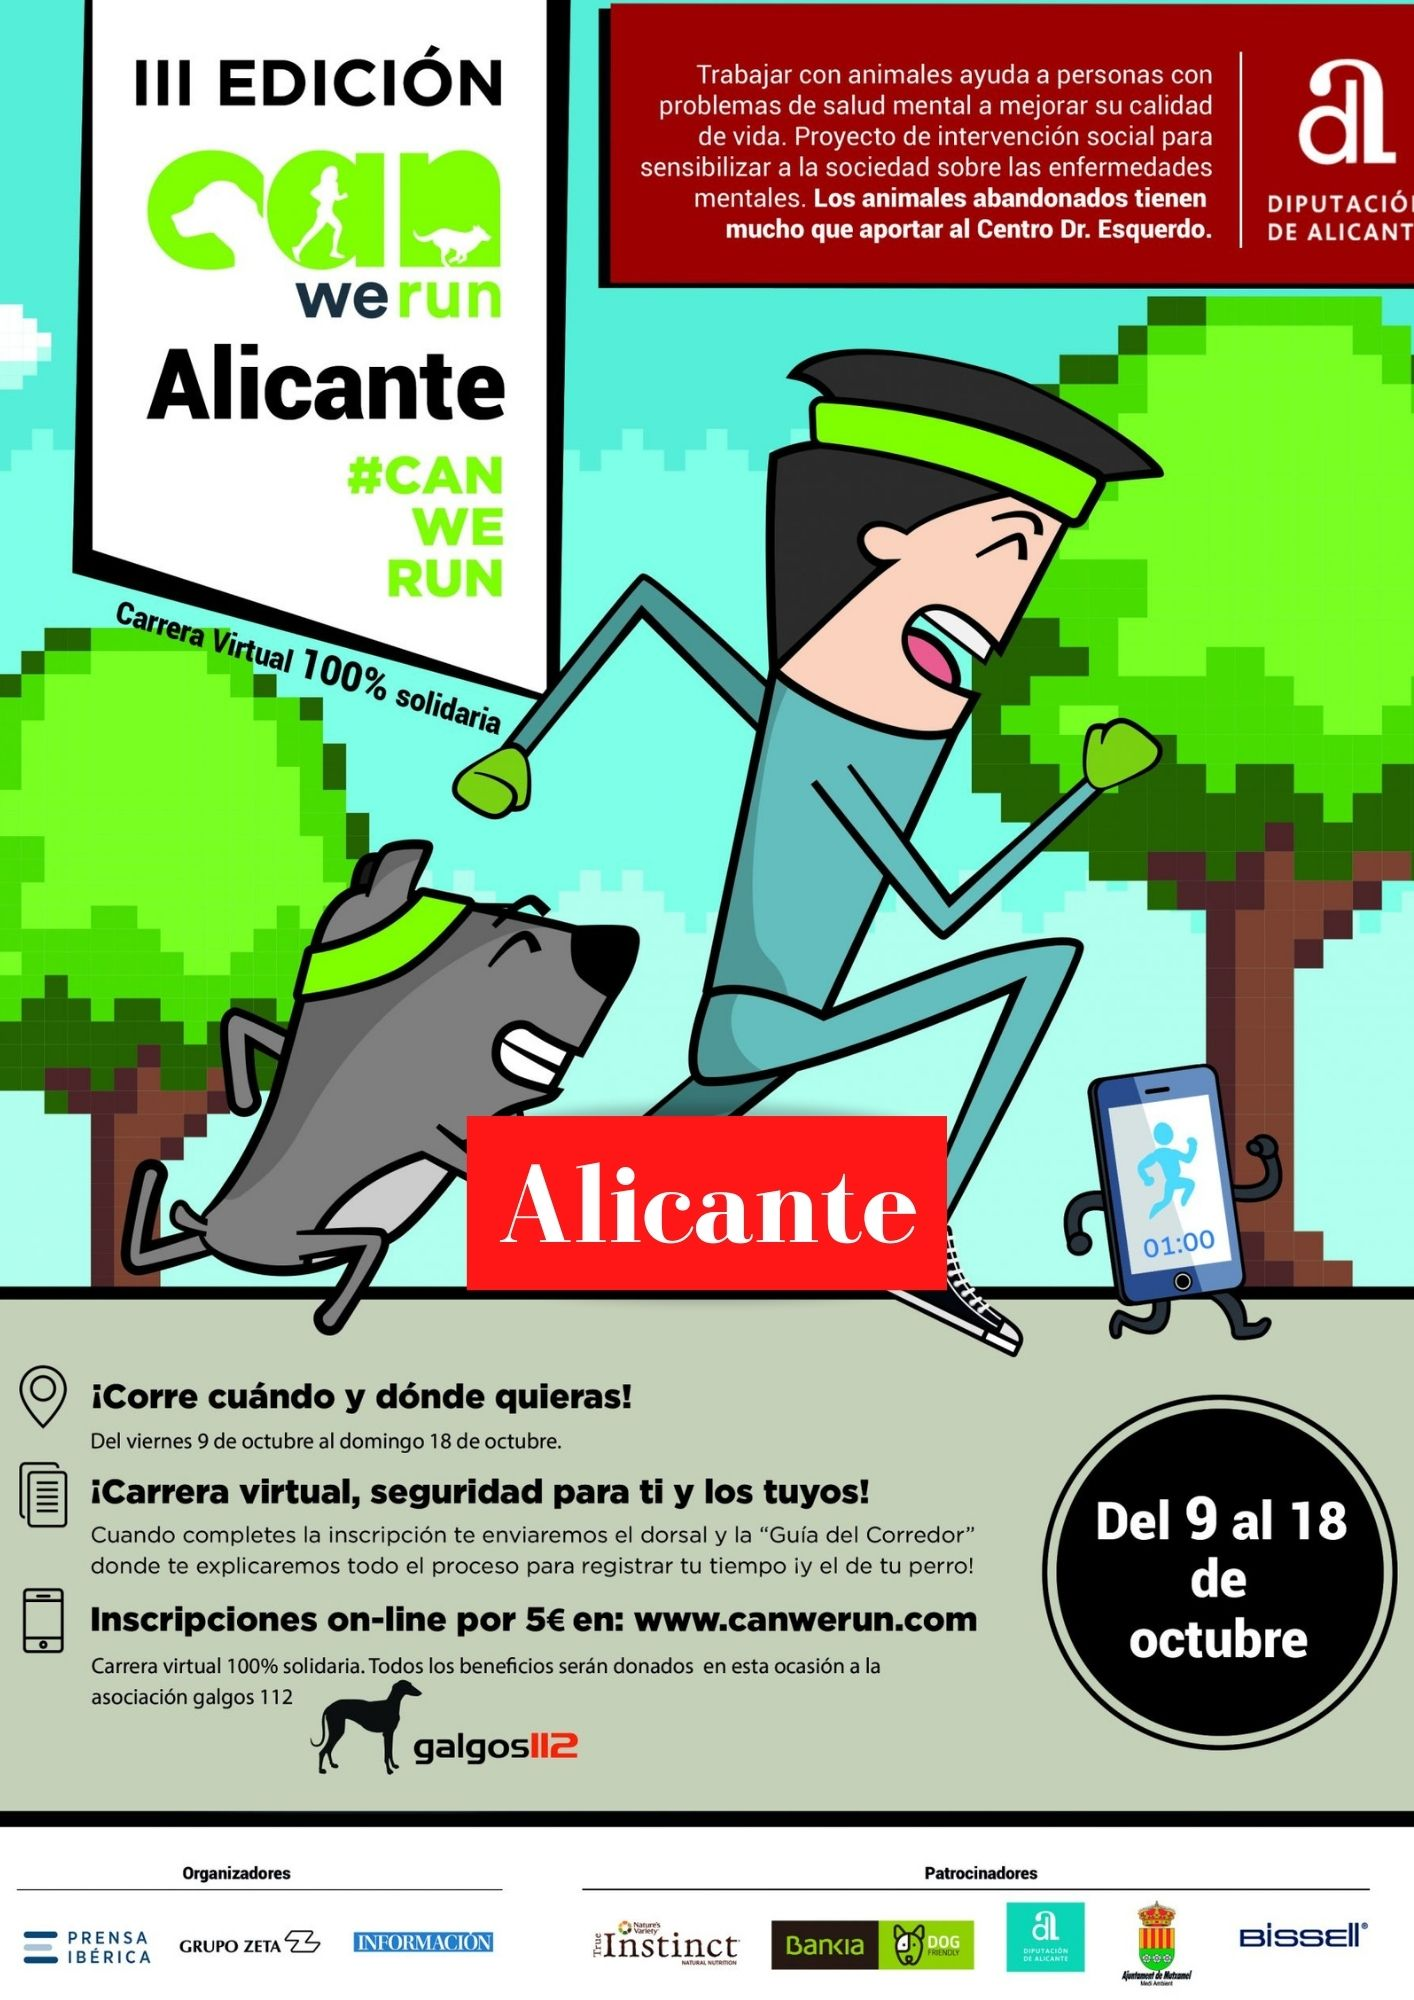 Can We Run Alicante